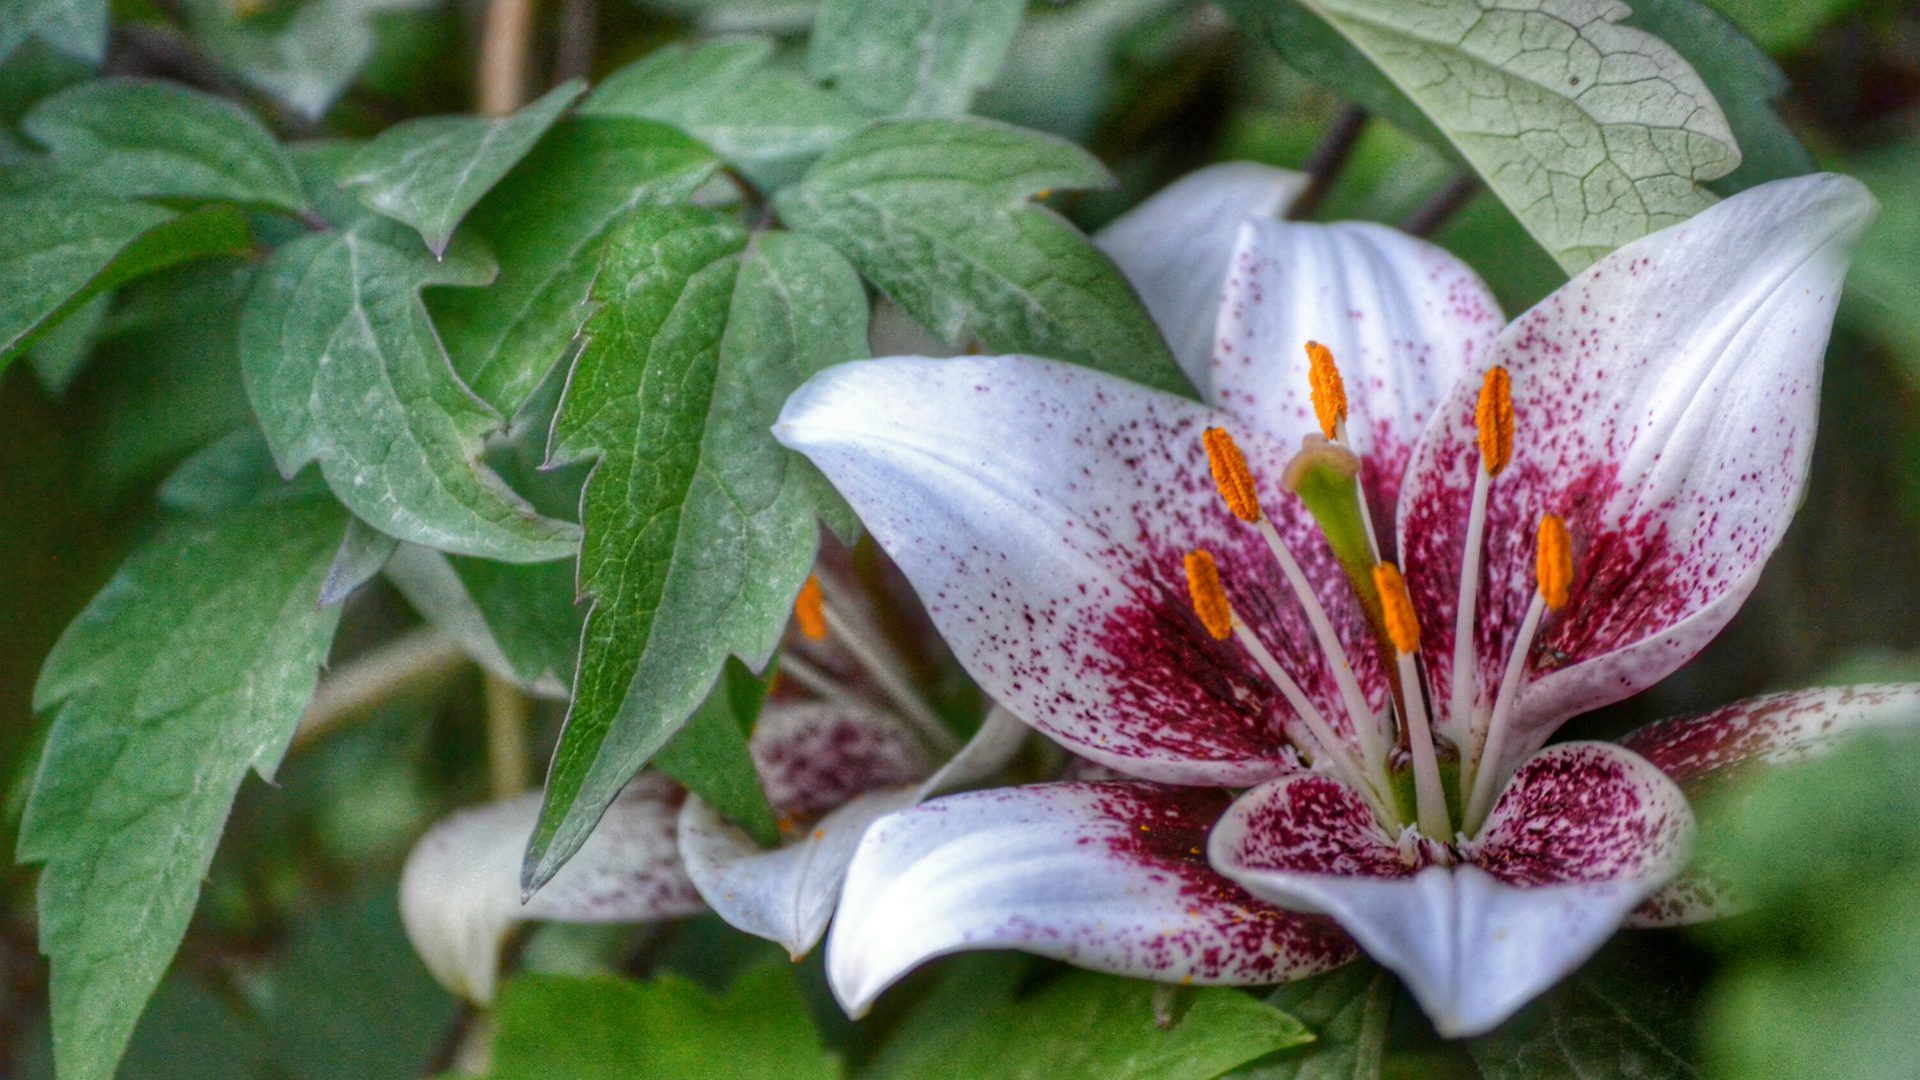 Lily flower wallpaper 2018 wallpapers hd flower pinterest lily flower wallpaper 2018 is high definition wallpaper you can make this wallpaper for your desktop background android or iphone plus izmirmasajfo